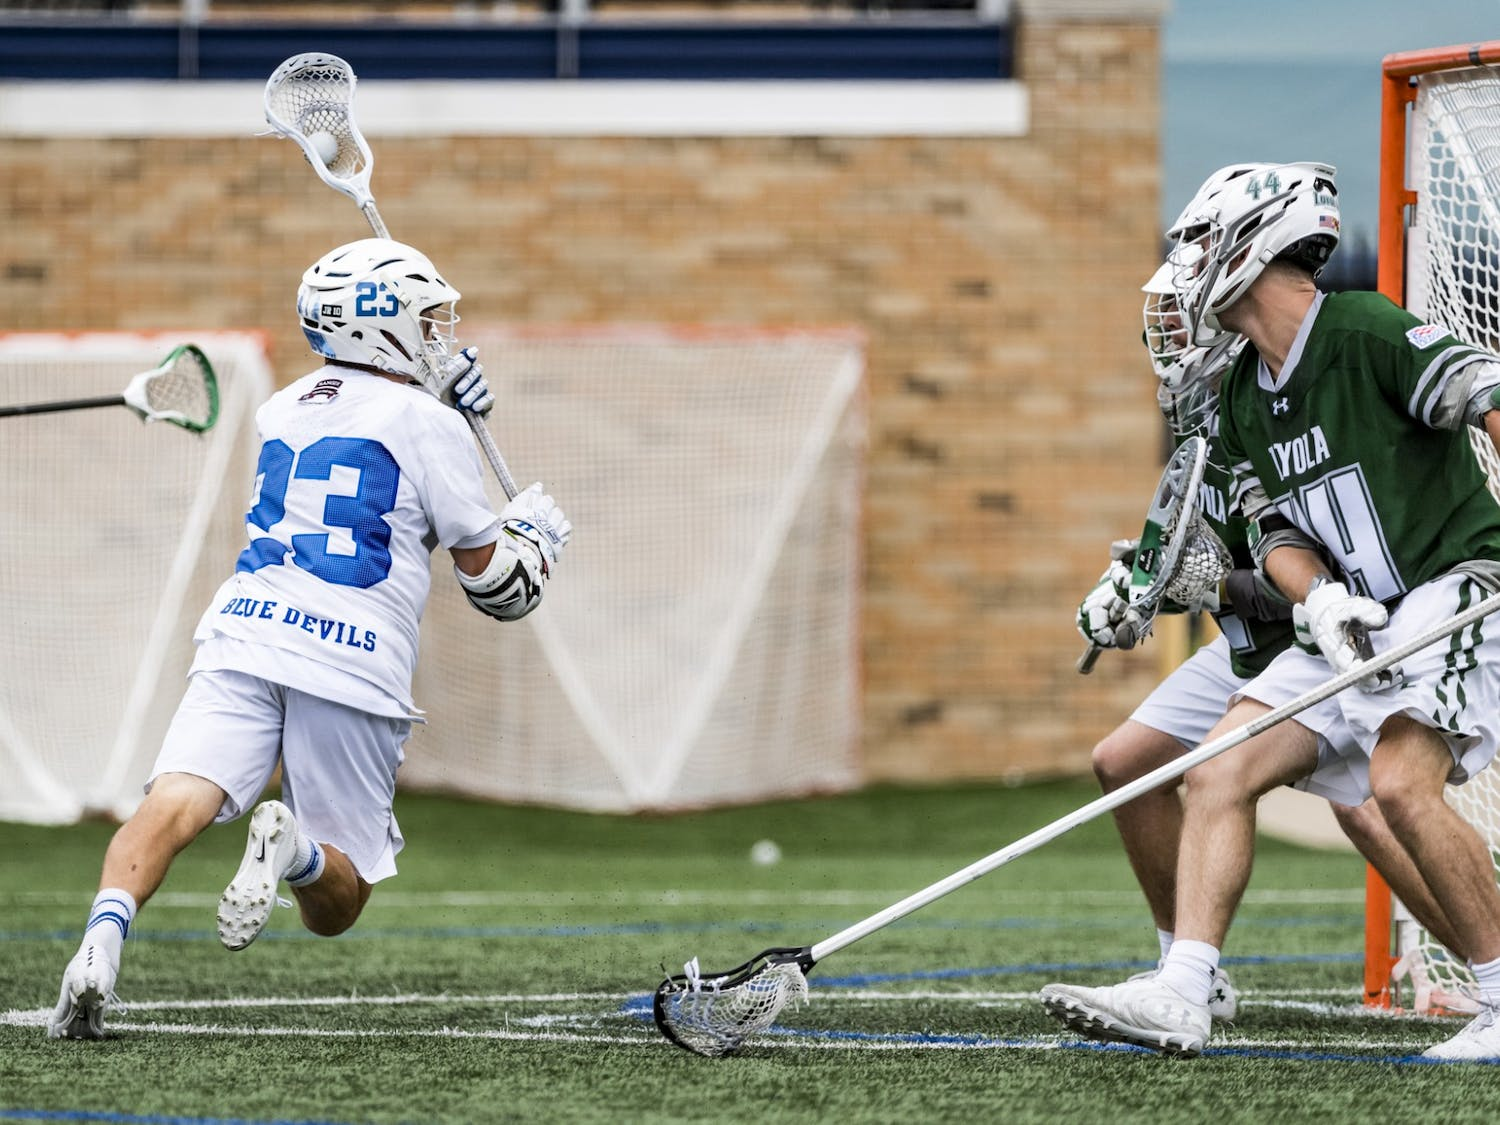 Graduate transfer Michael Sowers notched one goal in the first half against Maryland.